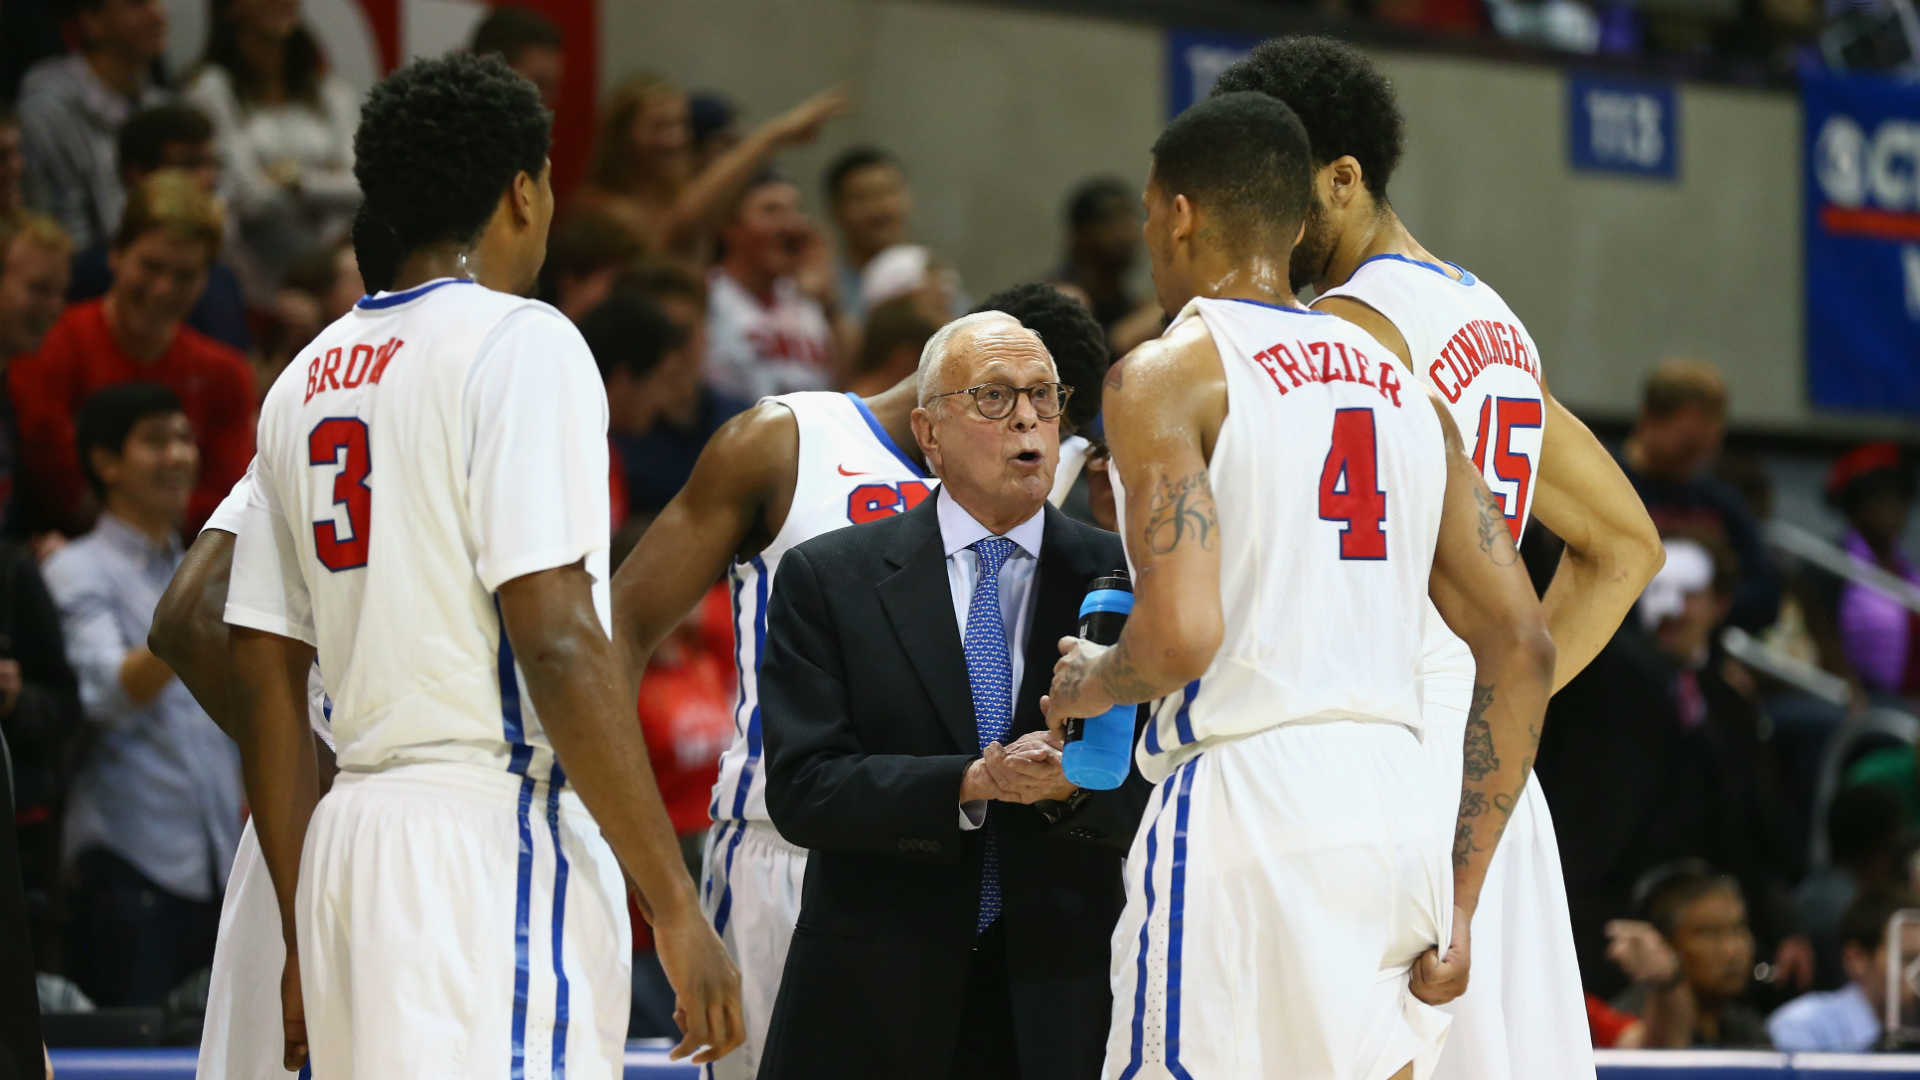 SMU's Larry Brown 'confident we're going to move on' despite NCAA probe